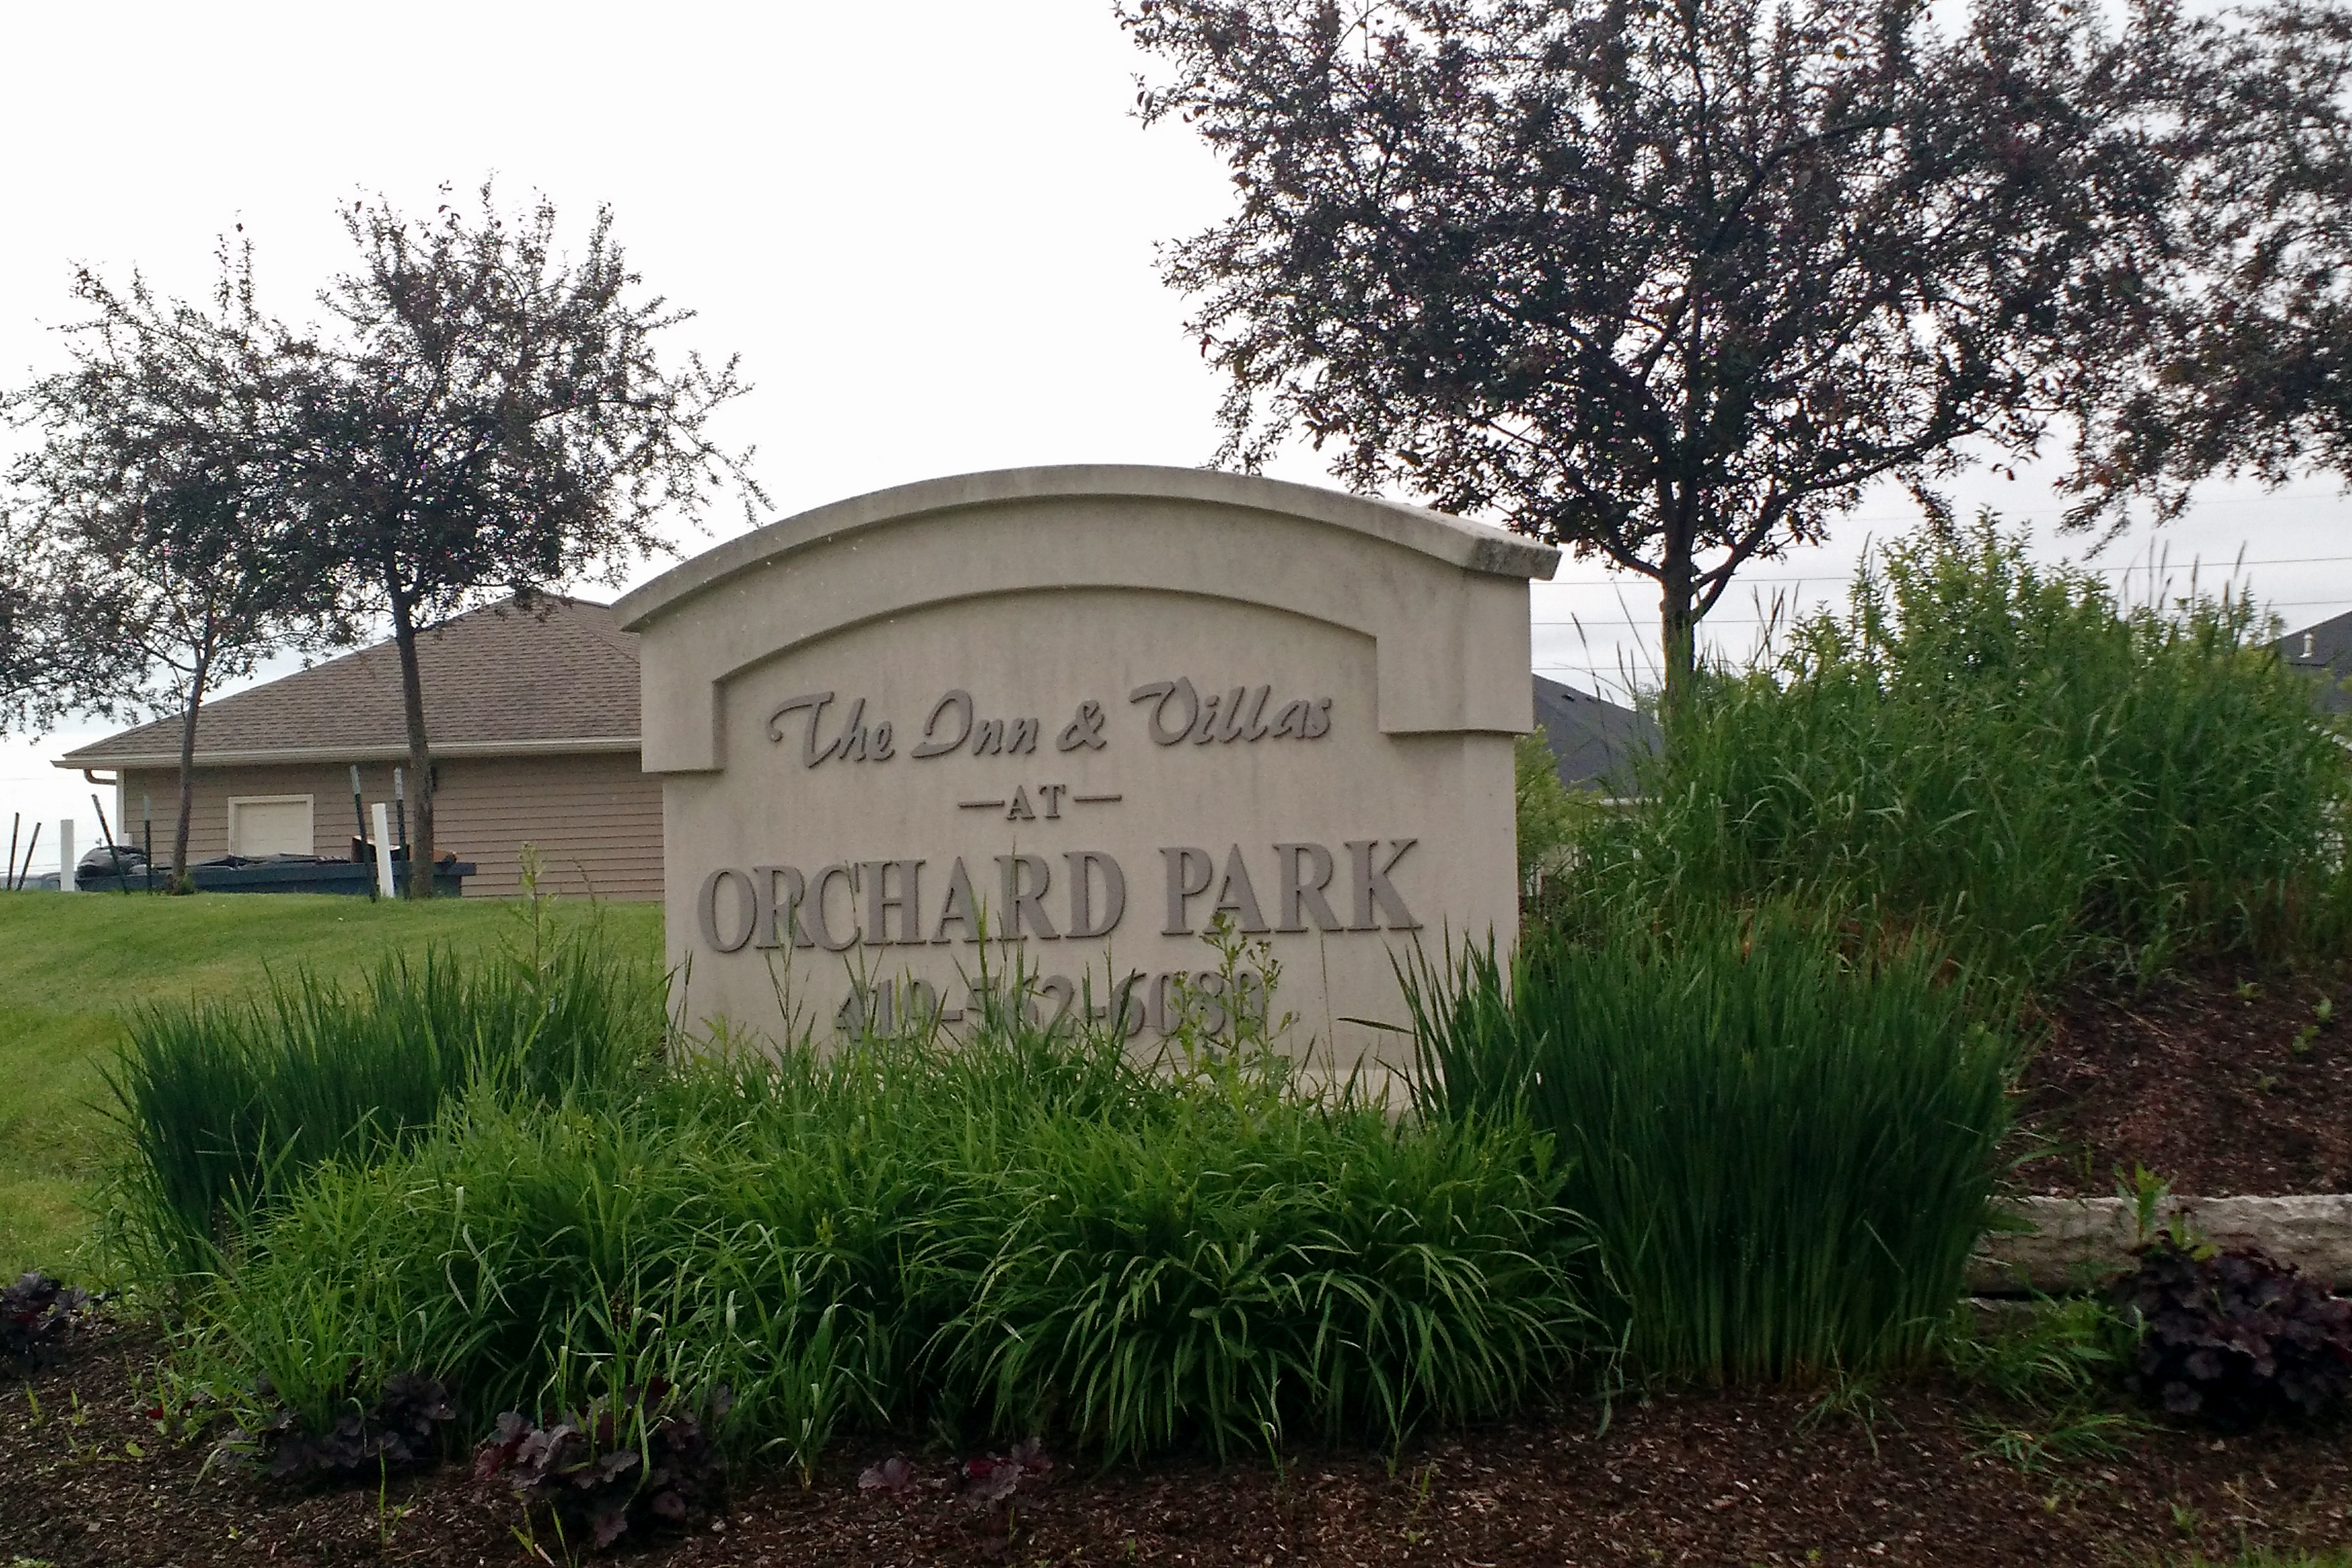 Orchard Park Celebrating 10th Anniversary This Weekend